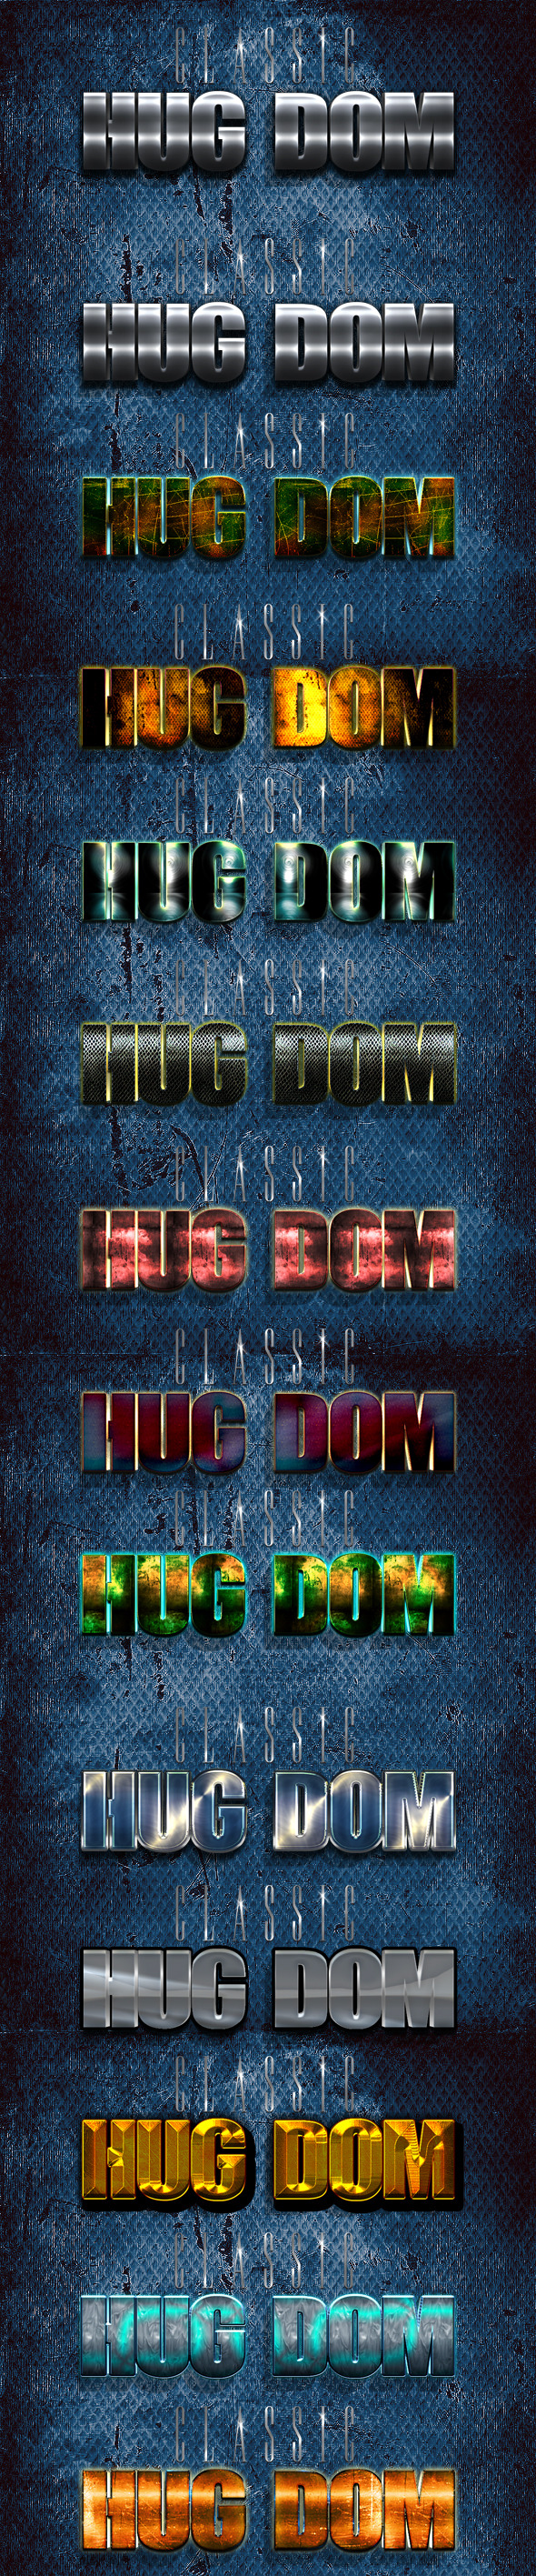 3D Huge Layer Styles - Text Effects Styles